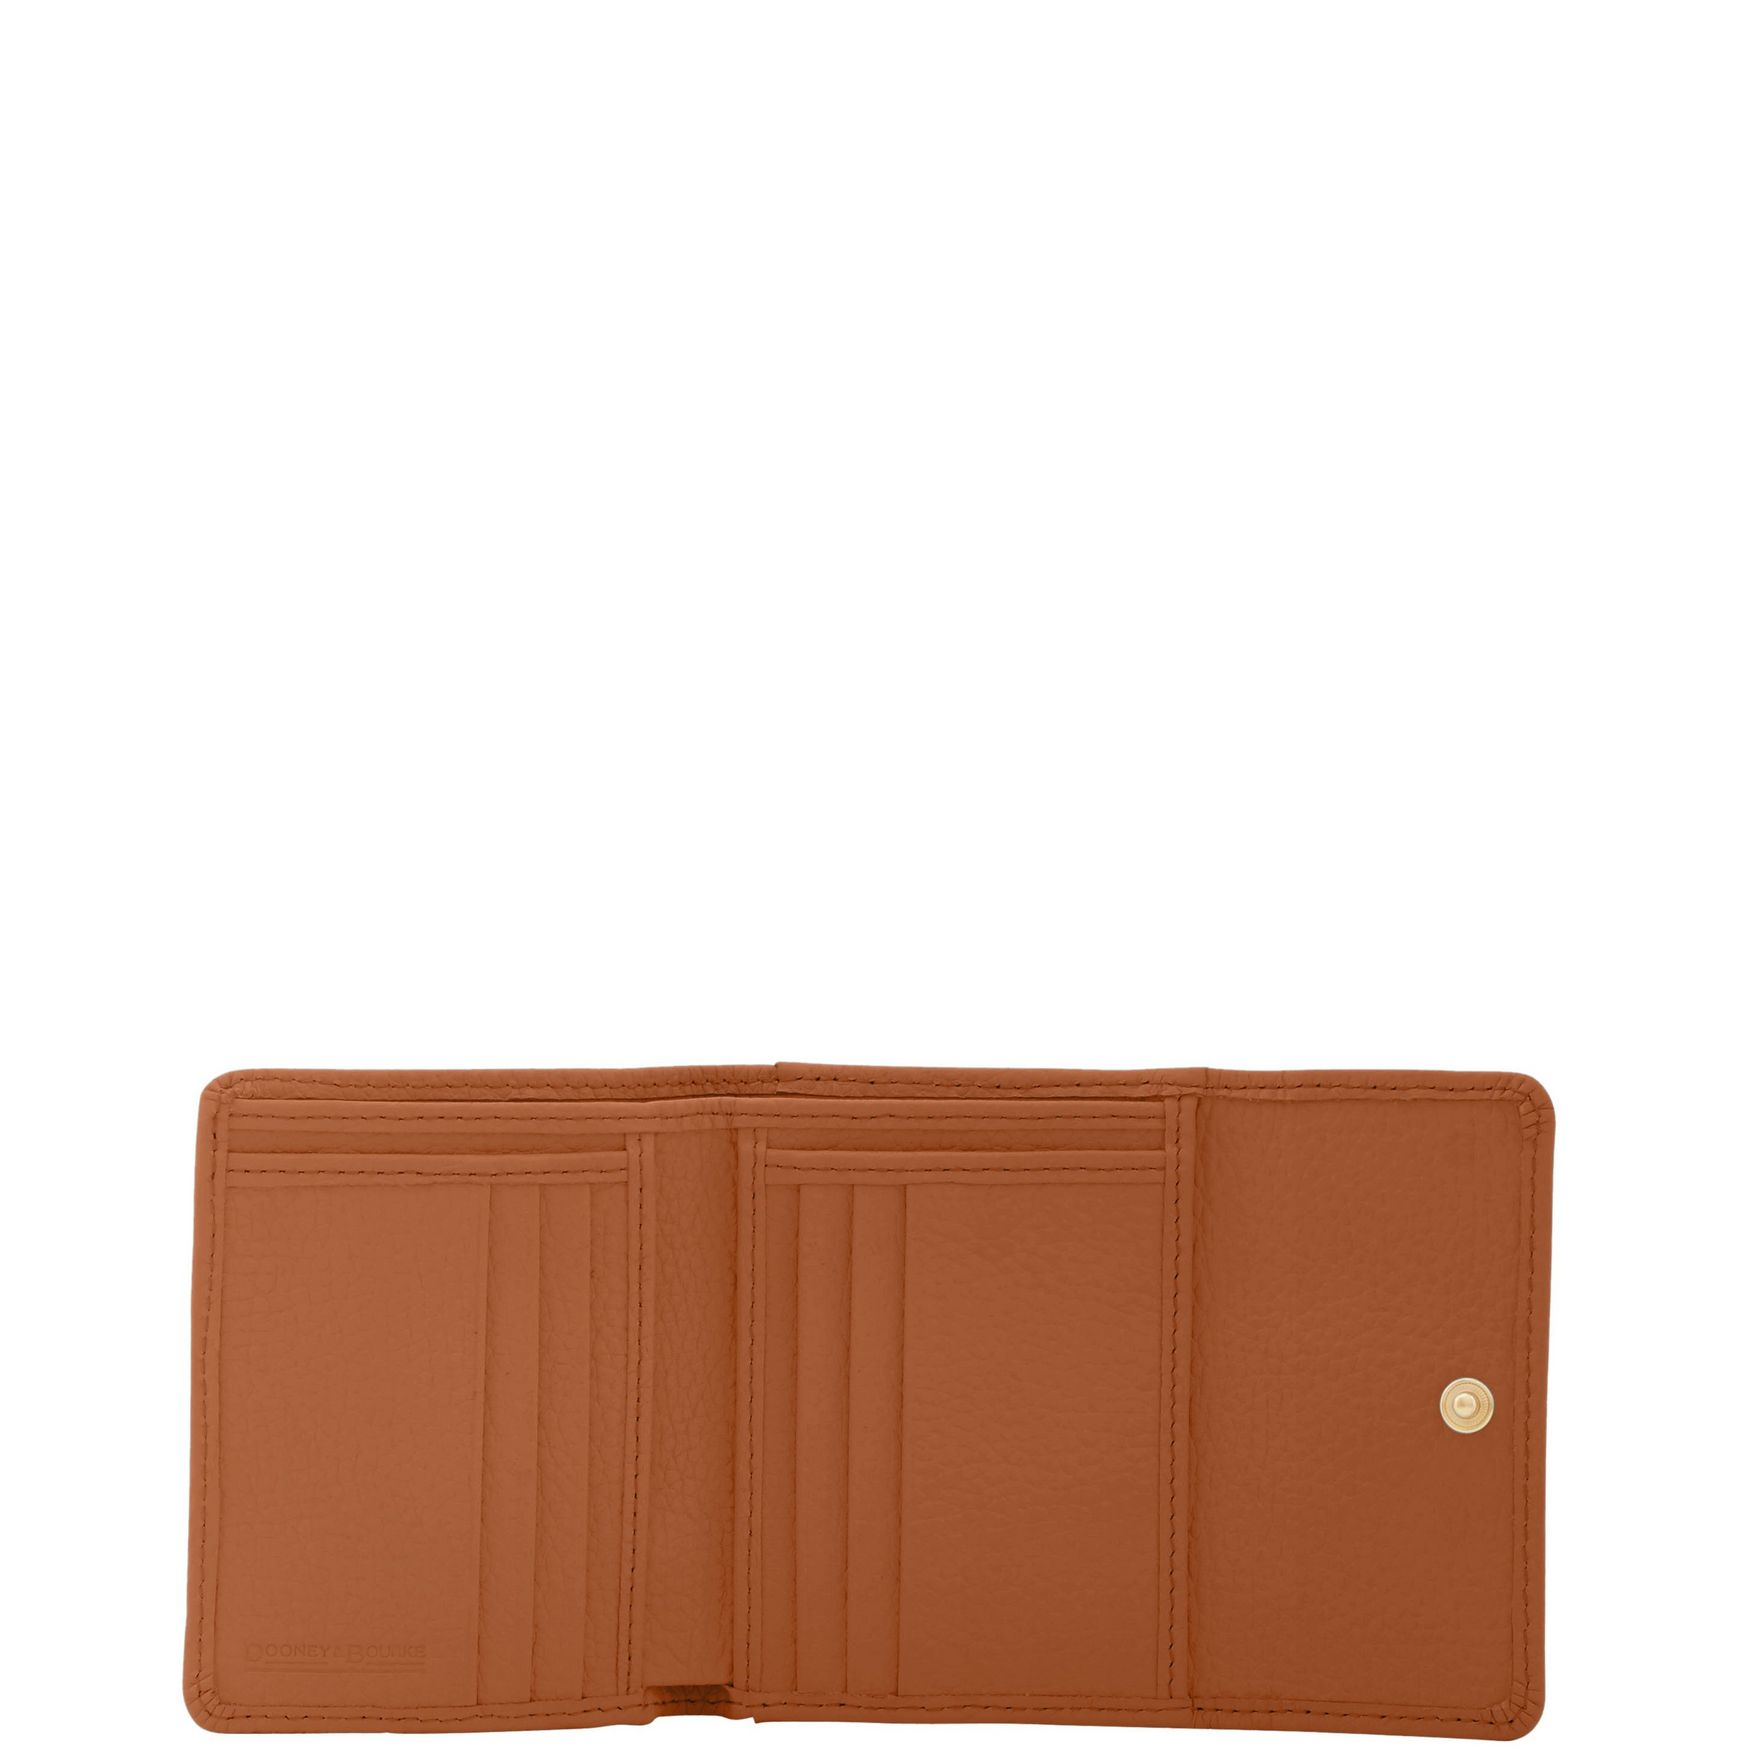 Dooney-amp-Bourke-Pebble-Grain-Small-Flap-Wallet thumbnail 17